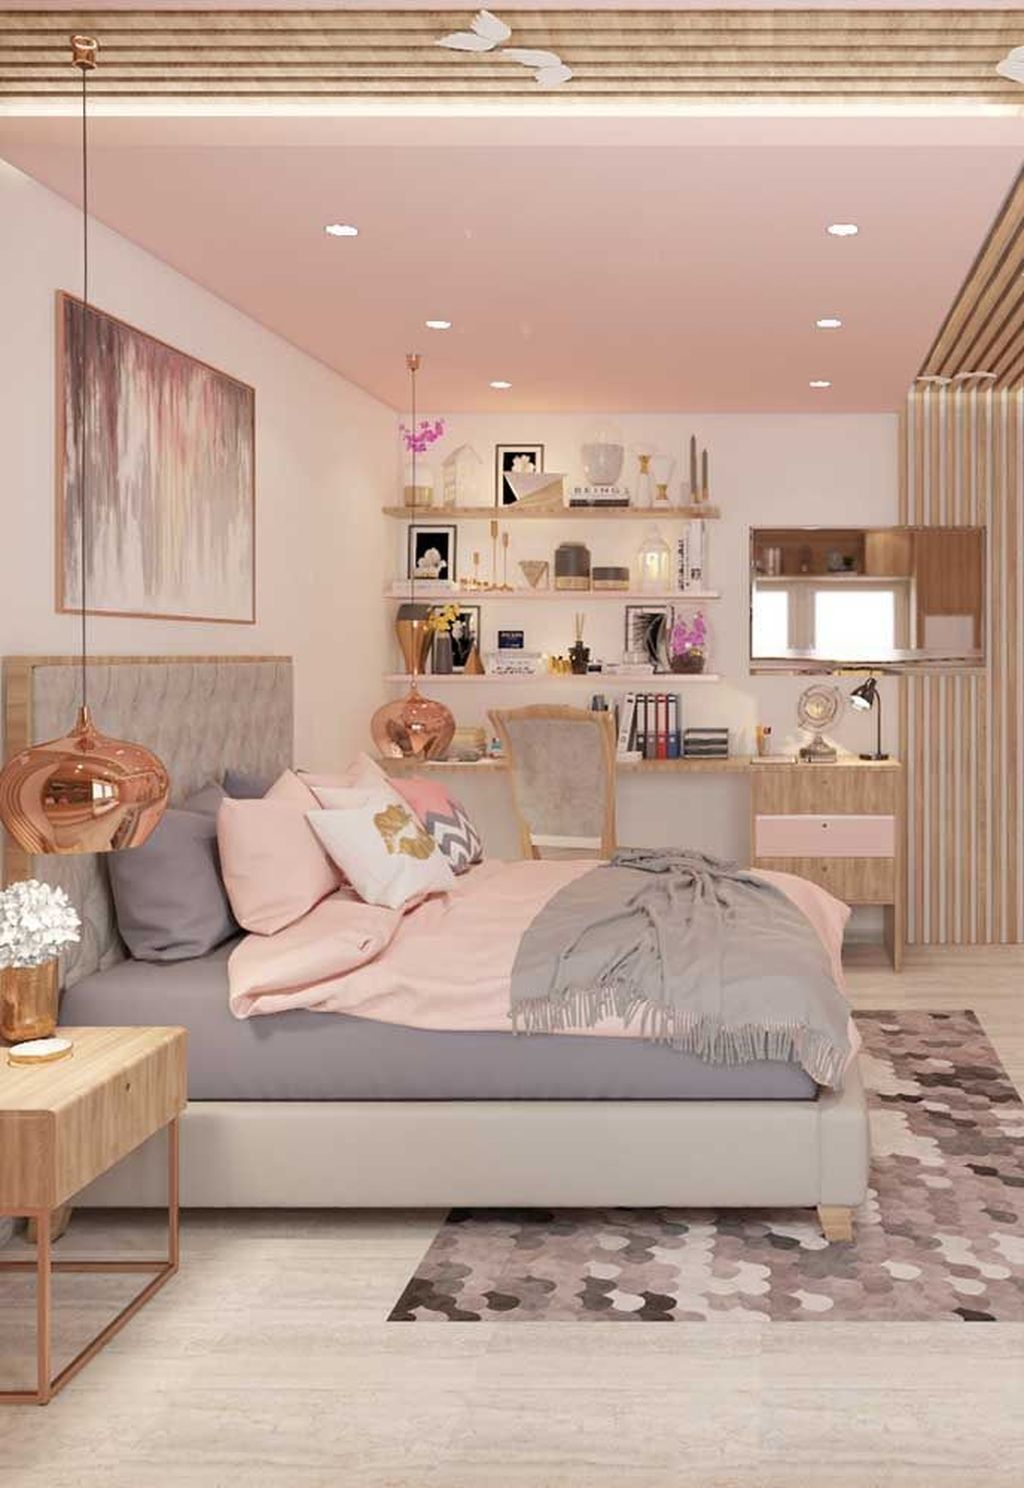 Pink Bedroom Decor You Can Try on Your Own | Bedroom interior, Girl bedroom  decor, Pink bedroom for girls